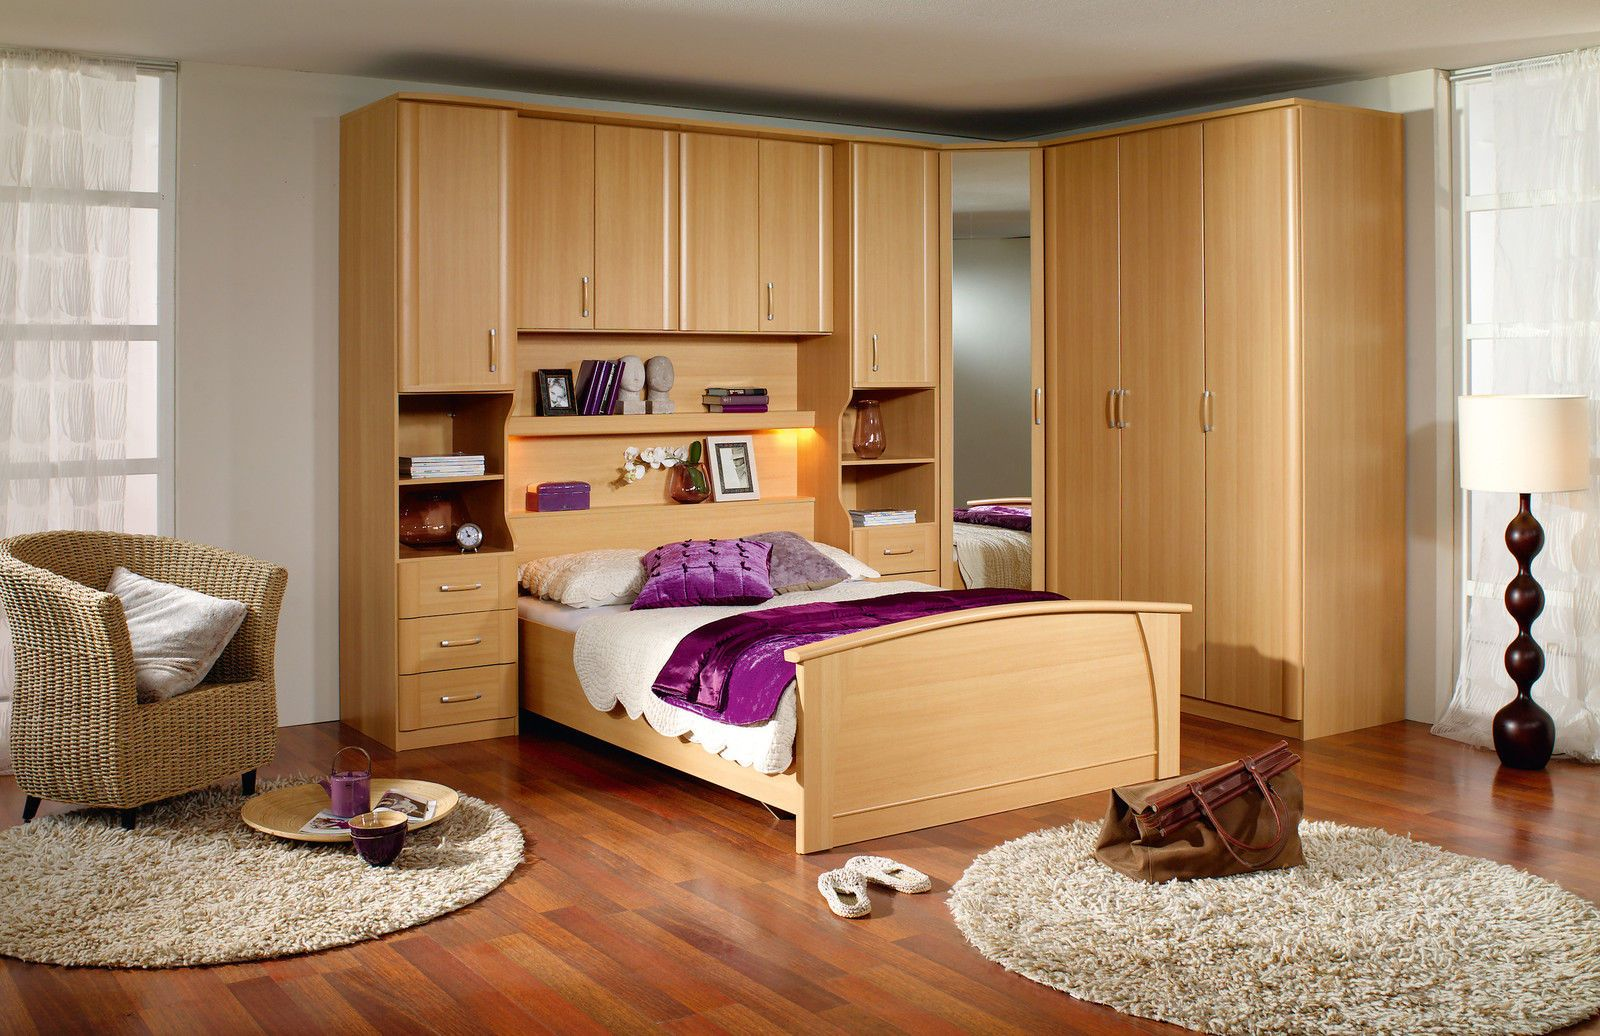 details about rauch overbed unit and wardrobes excluding bedframe large living room furniture